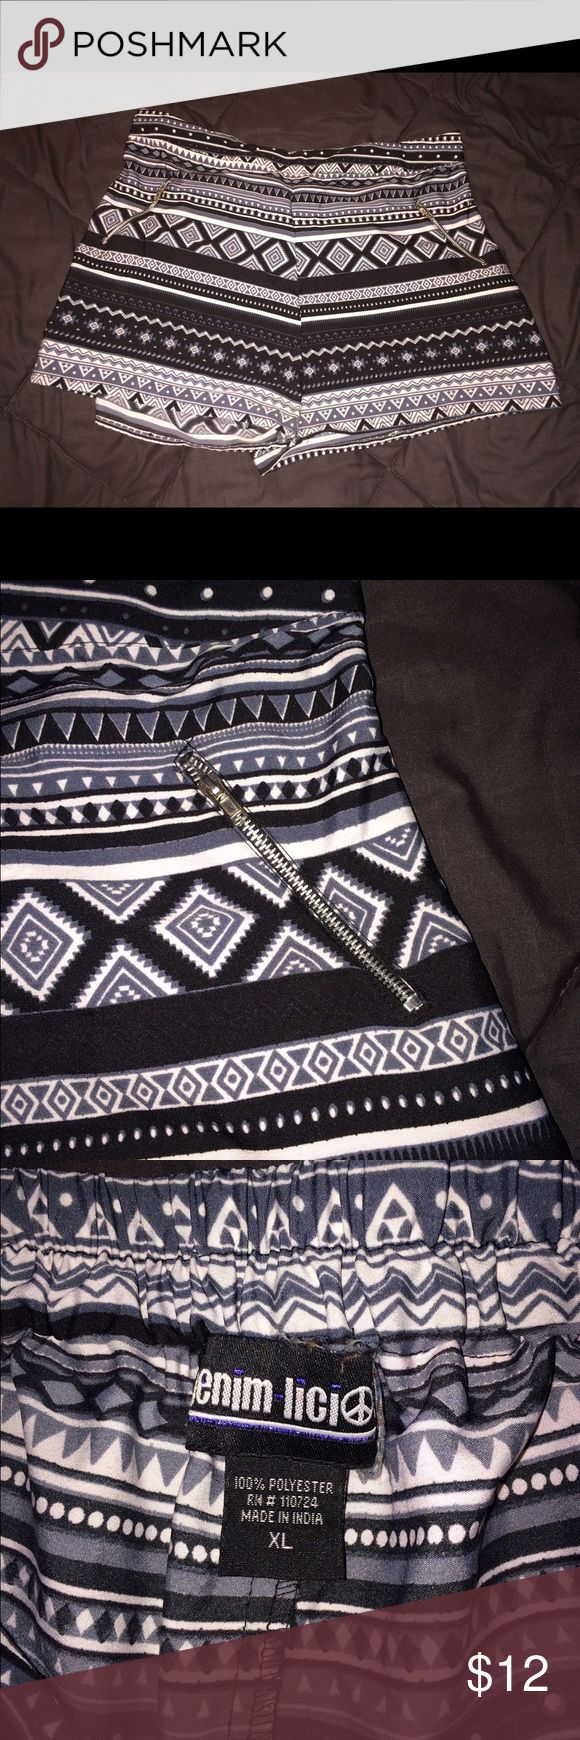 Aztec Print Shorts XL These shorts are from factory connection, they are XL. Gray/Silver/Black Very cute with the zippers in front! Great condition, only worn to try on. 🍂🍁🍃 Shorts